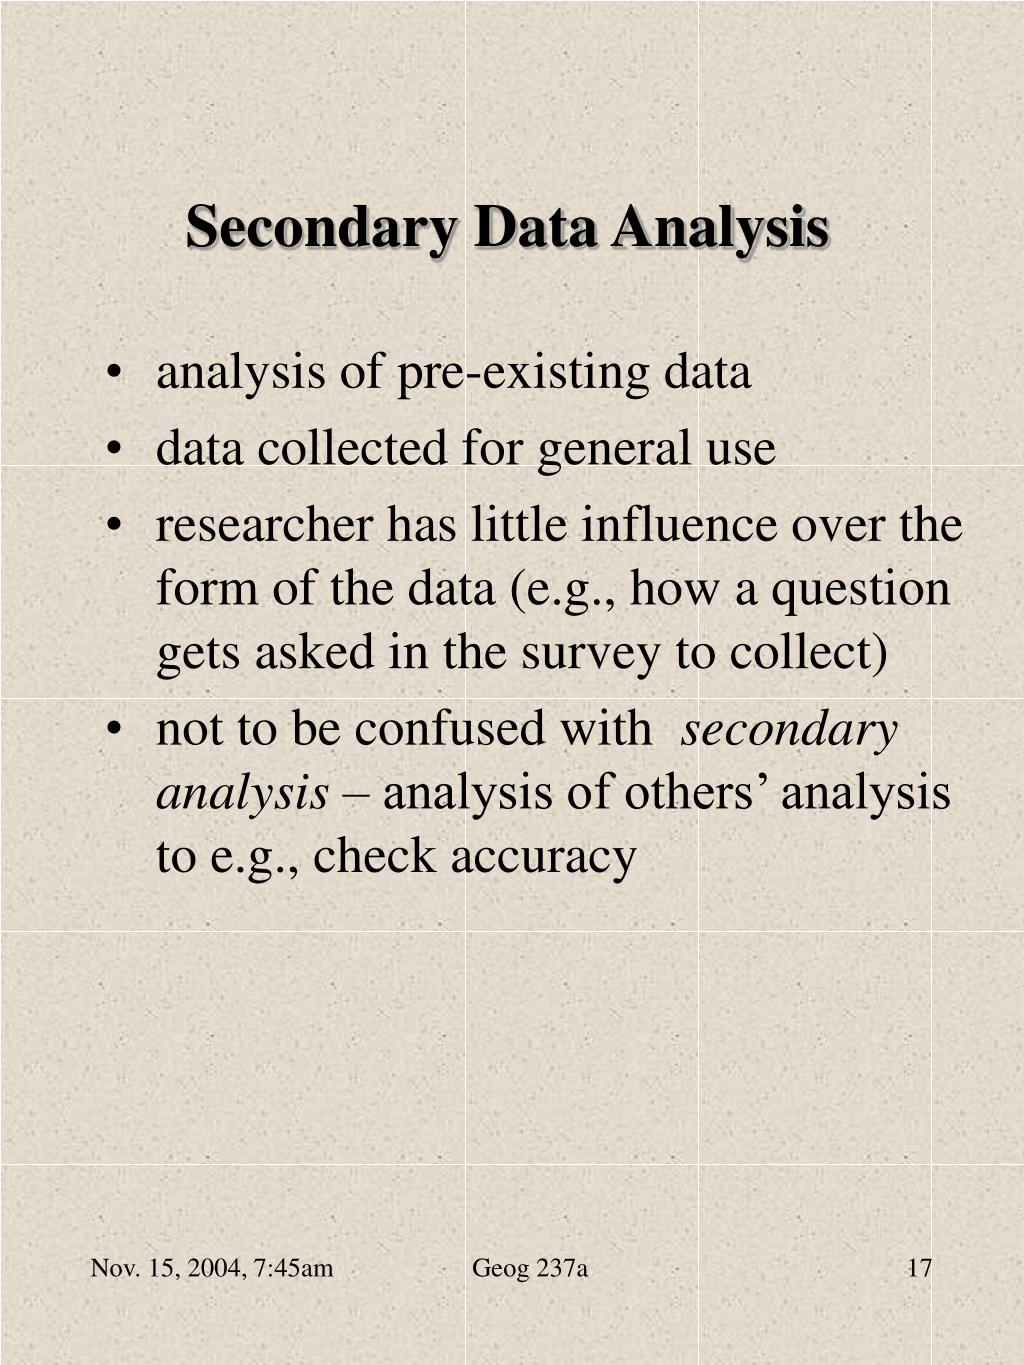 secondary data analysis The purpose of this study was a secondary analysis in order to determine missed nursing care and reasons for missed nursing care in a hospital system located in the southwest united states.